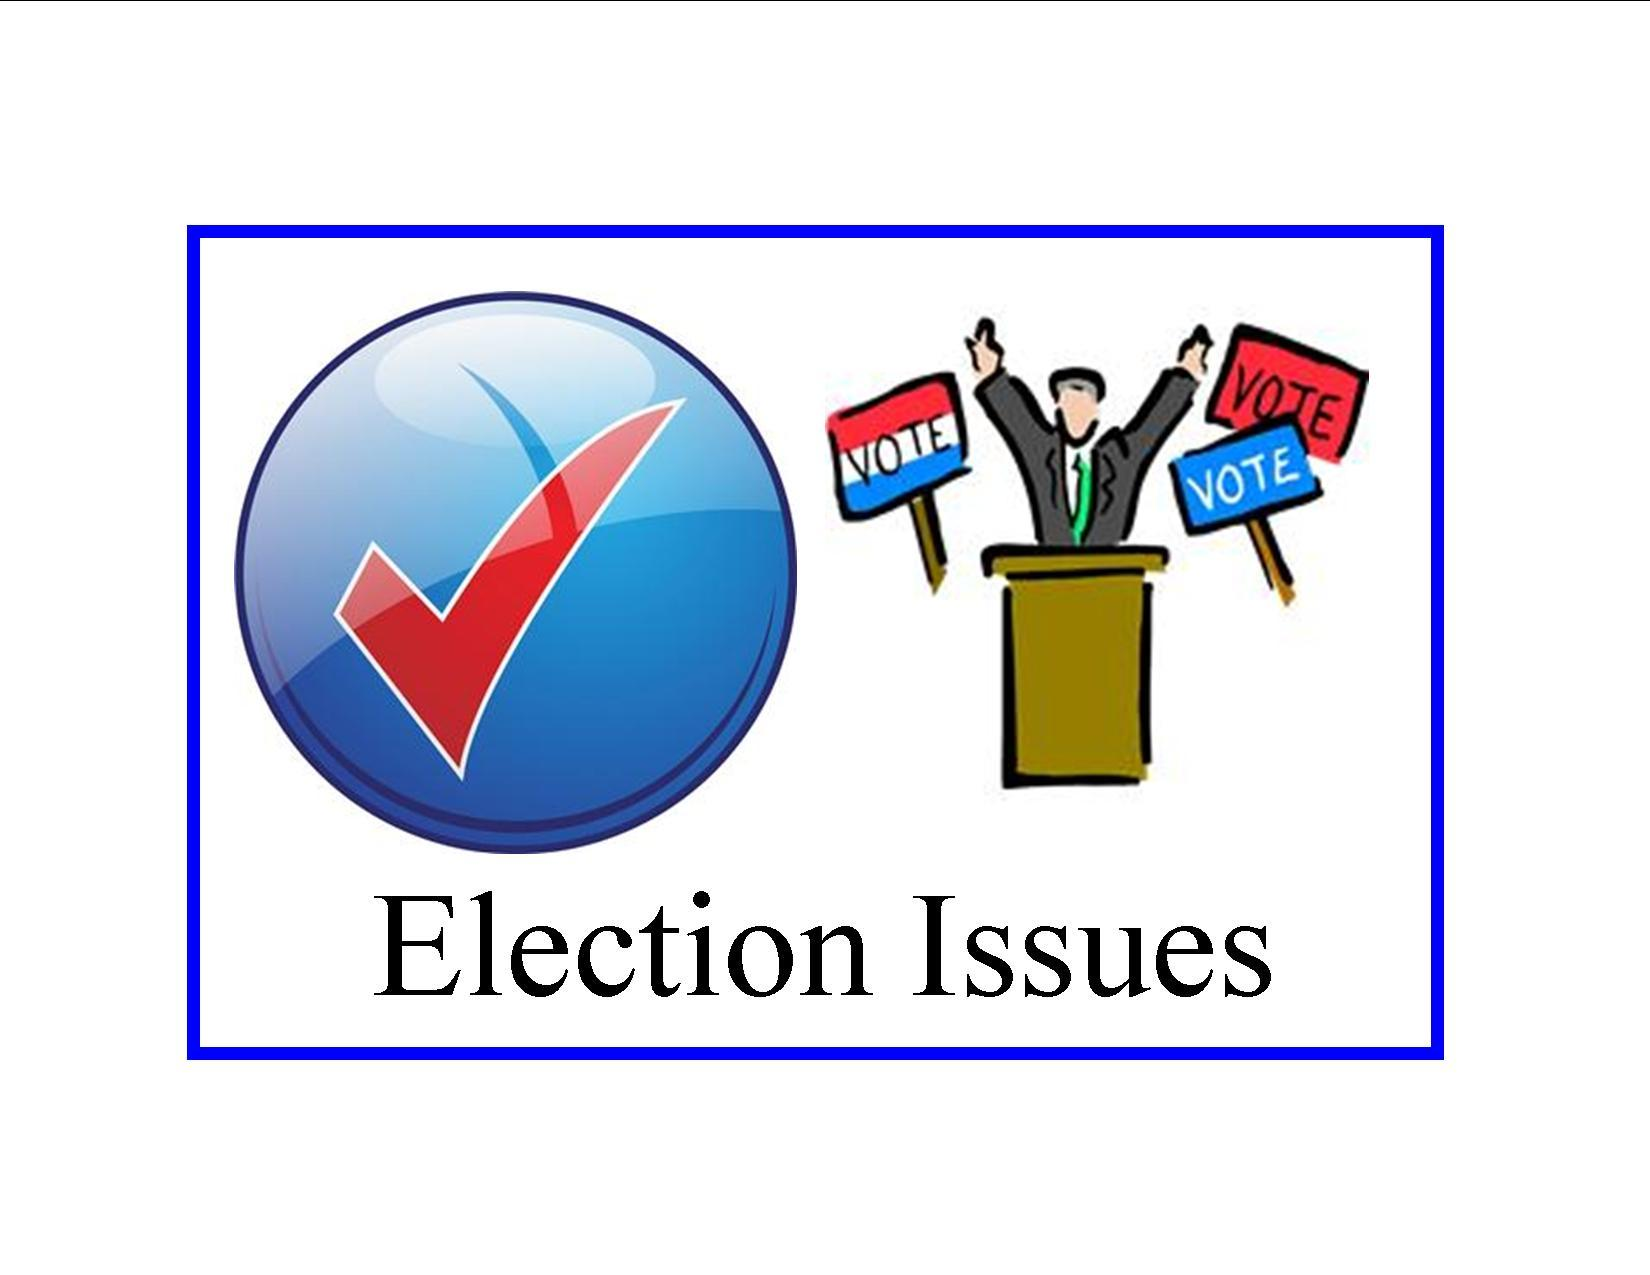 64611cbf260a77770866_election_issues.jpg